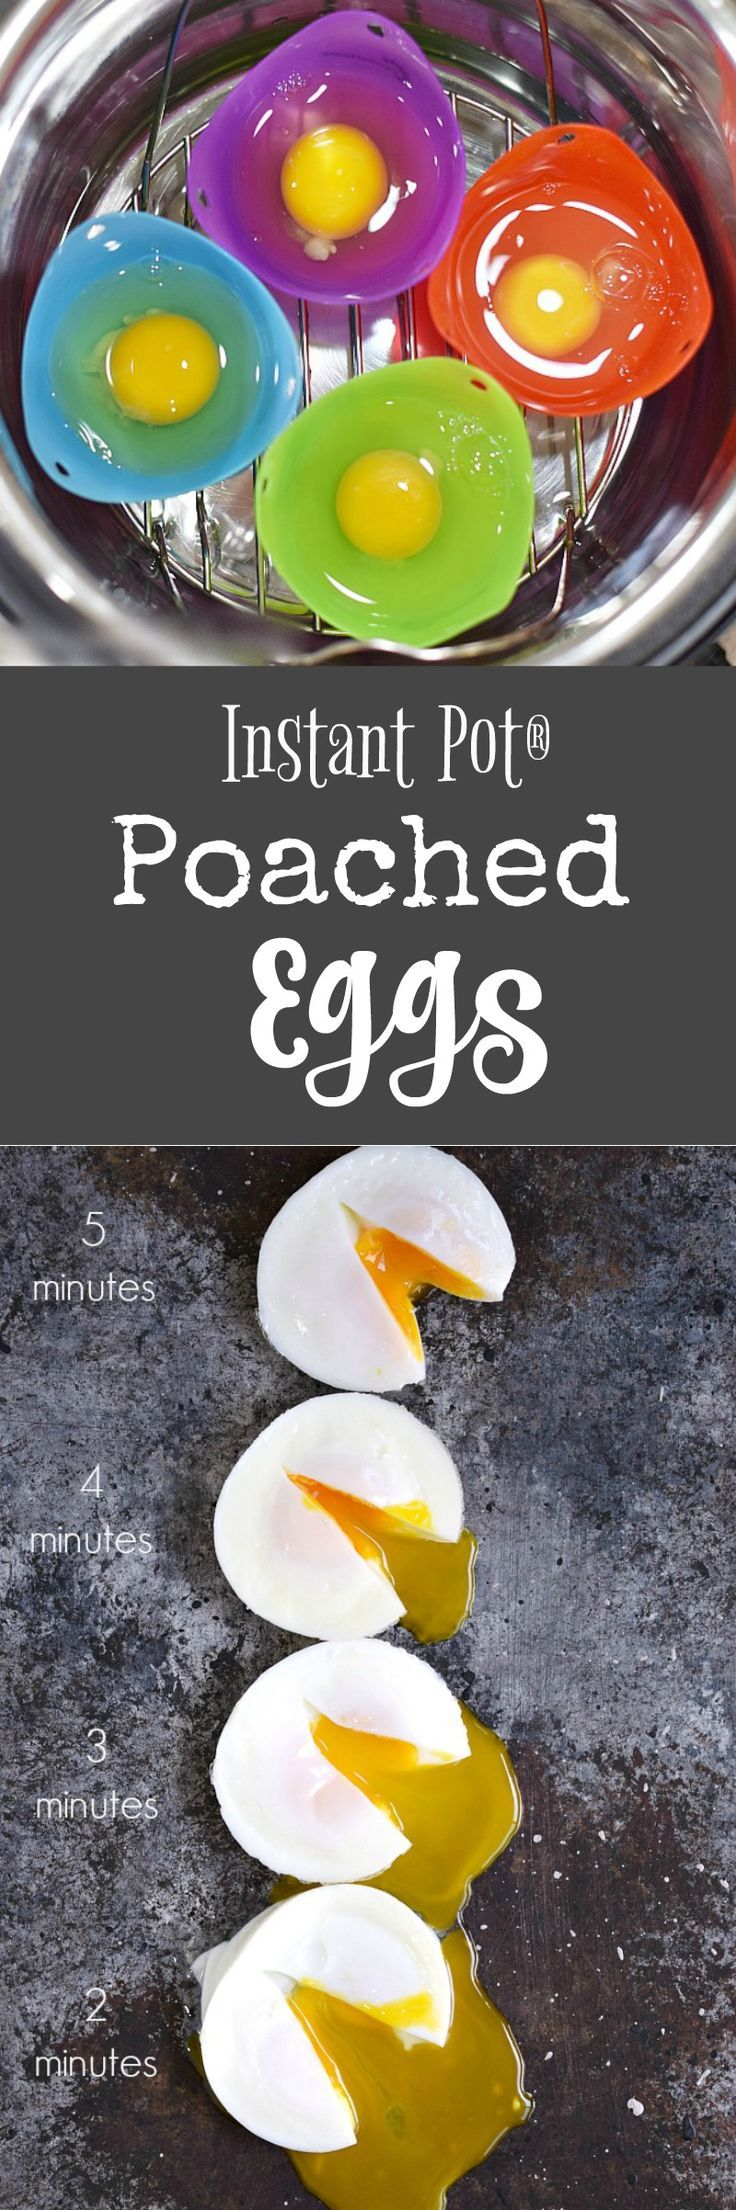 Now you can have Instant Pot Poached Eggs, hot and ready to serve in 2, 3, 4, or 5 minutes. They are super simple to make in individual silicone cups   cookingwithcurls.com